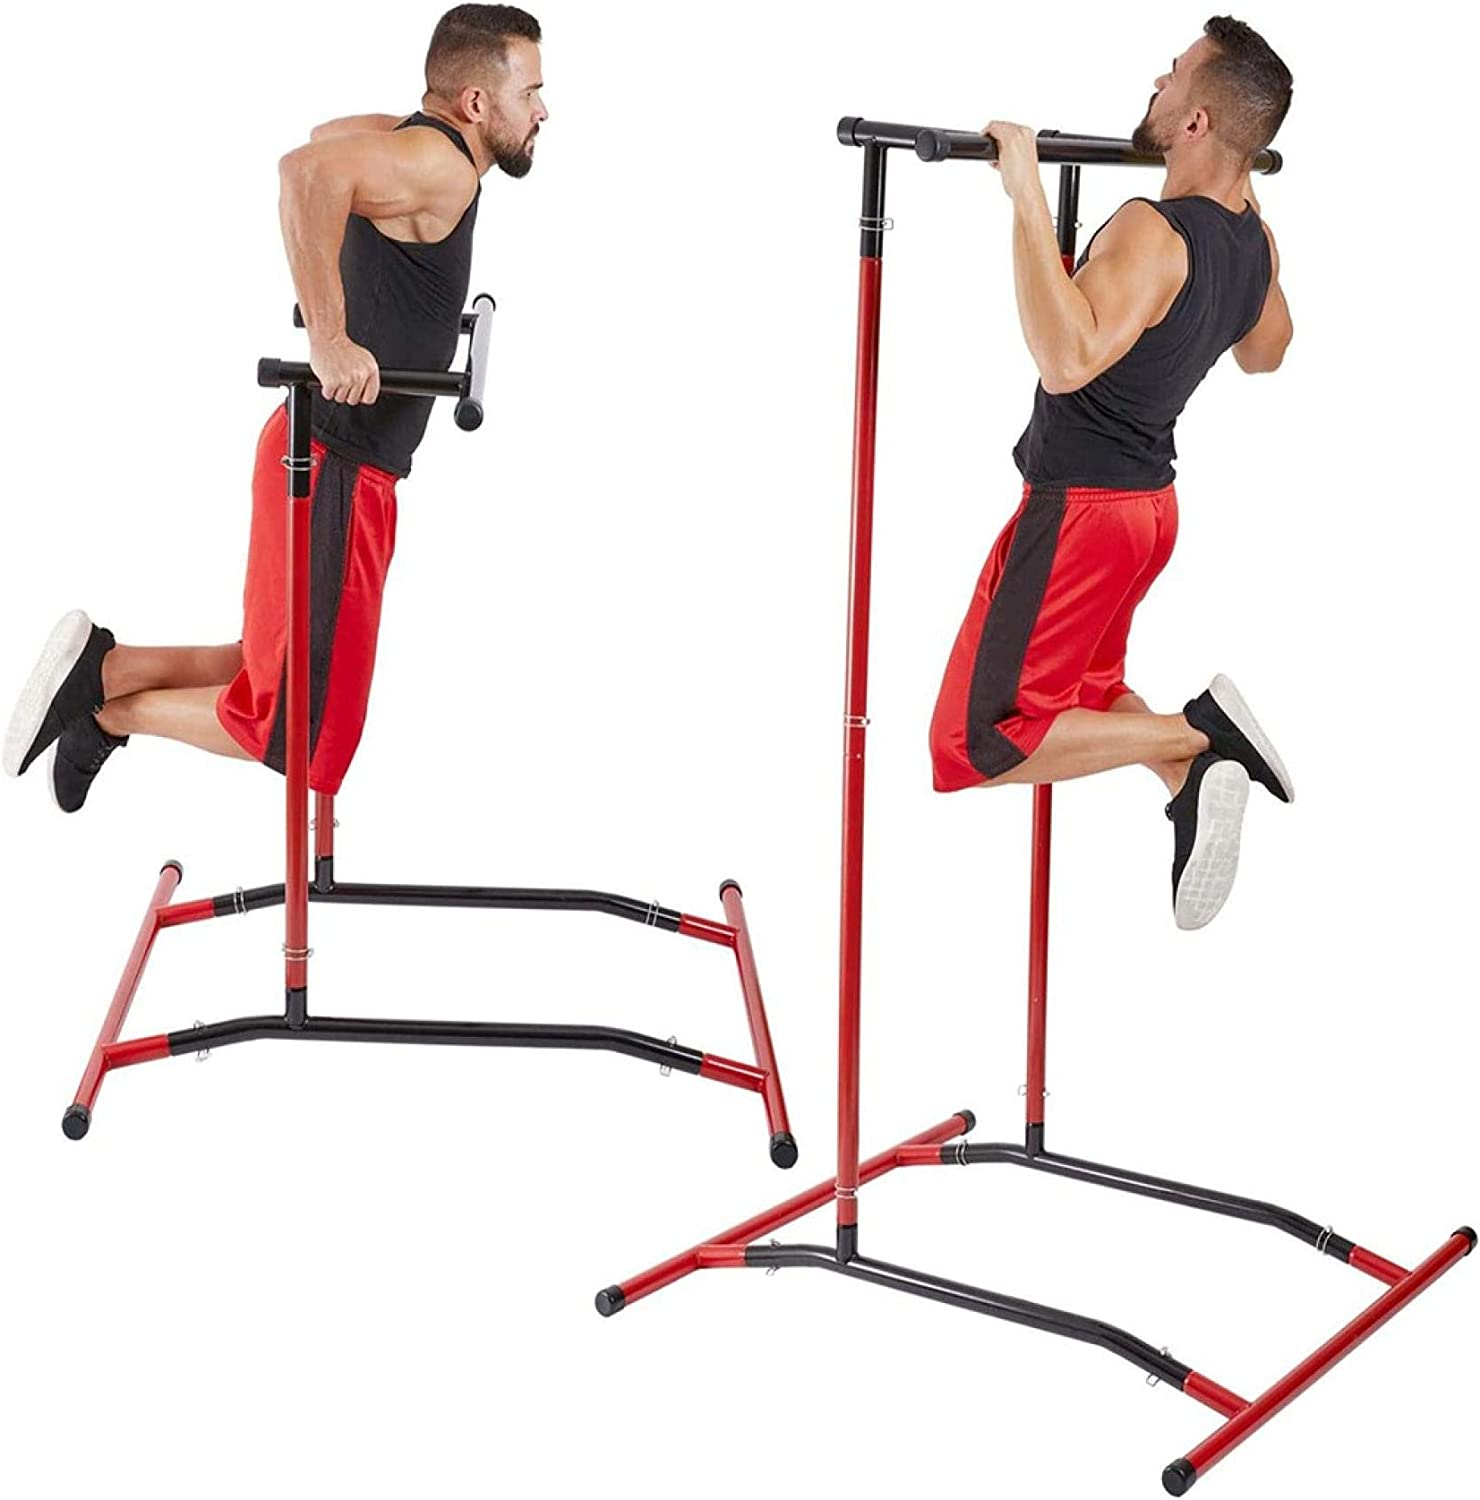 Pull Up Bar Sacramento Mall Free Standing Dip Station Home Portable Topics on TV Tower Power